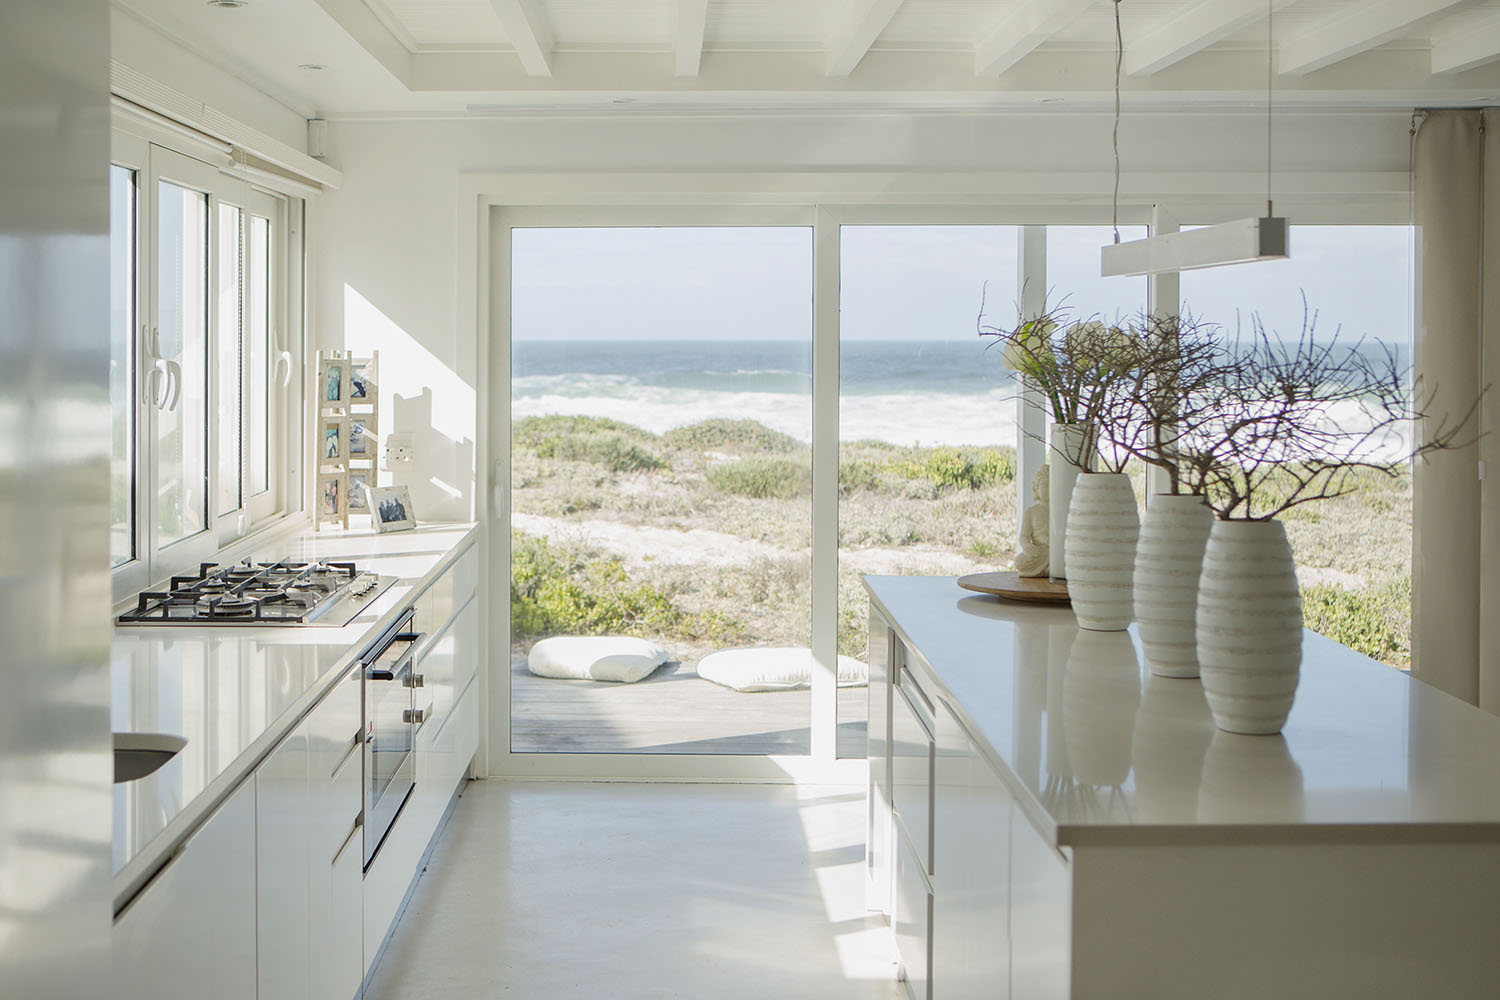 Feng Shui Küche Im Osten Expert Advice On How To Do Hamptons Style Interiors